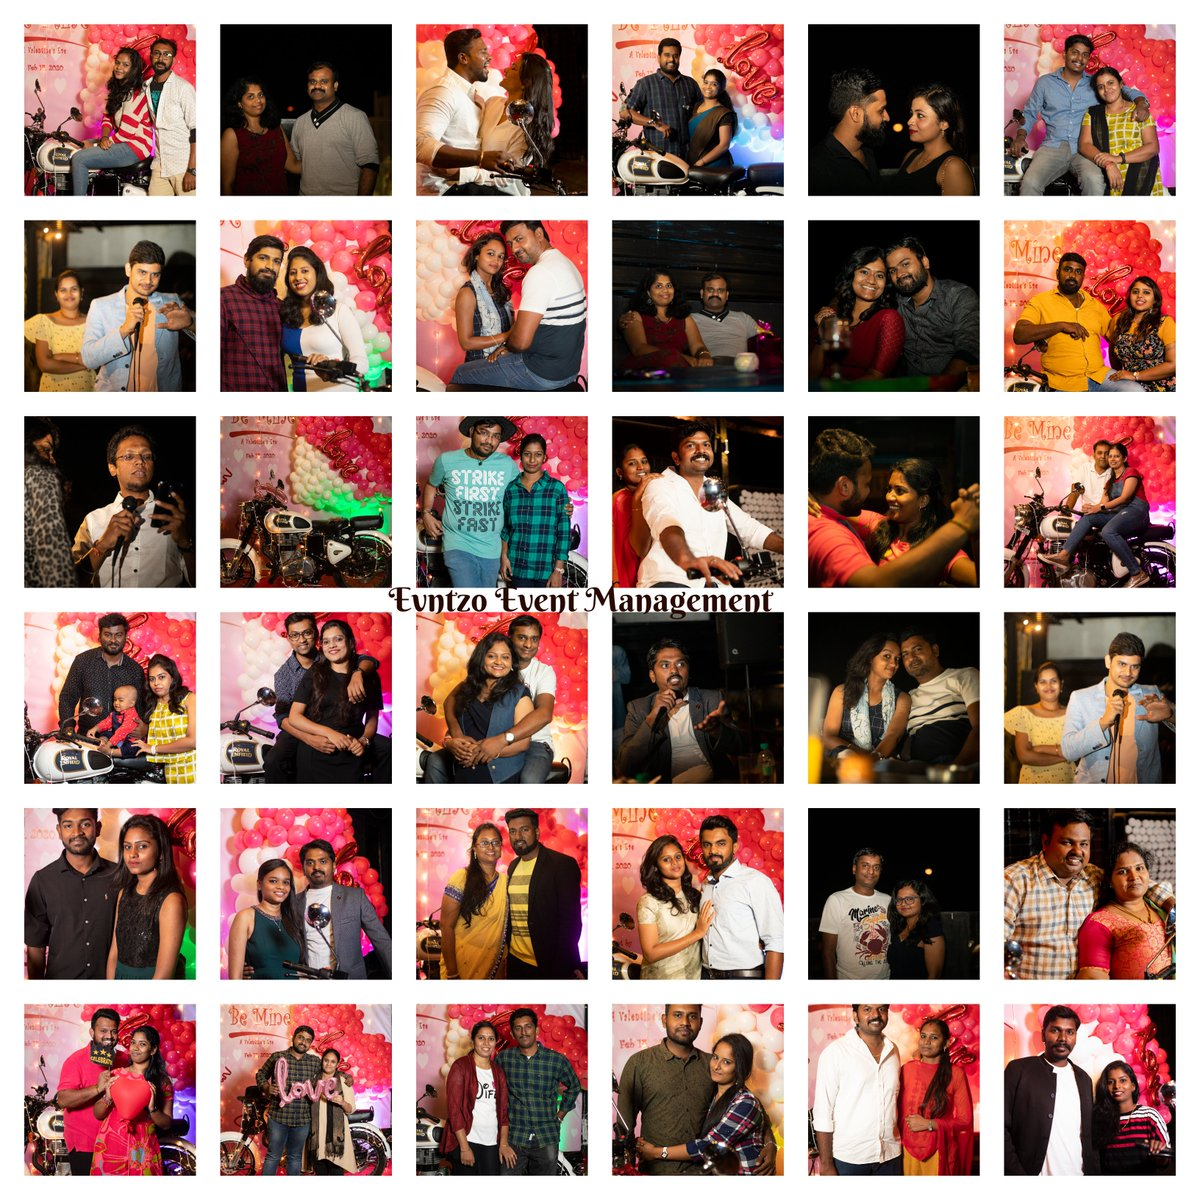 BE MINE - A valentines day #eve by #evntzo #eventmanagement.  Website : http://www.evntzo.com Mail Id: prime@evntzo.com  #photography #wedding #birthday #corporateevents #charity #reunion #party #decoration #catering #emcee #Transportation #Chennai #Bangalore #Coimbatore #Indiapic.twitter.com/aAtXLu6D0W